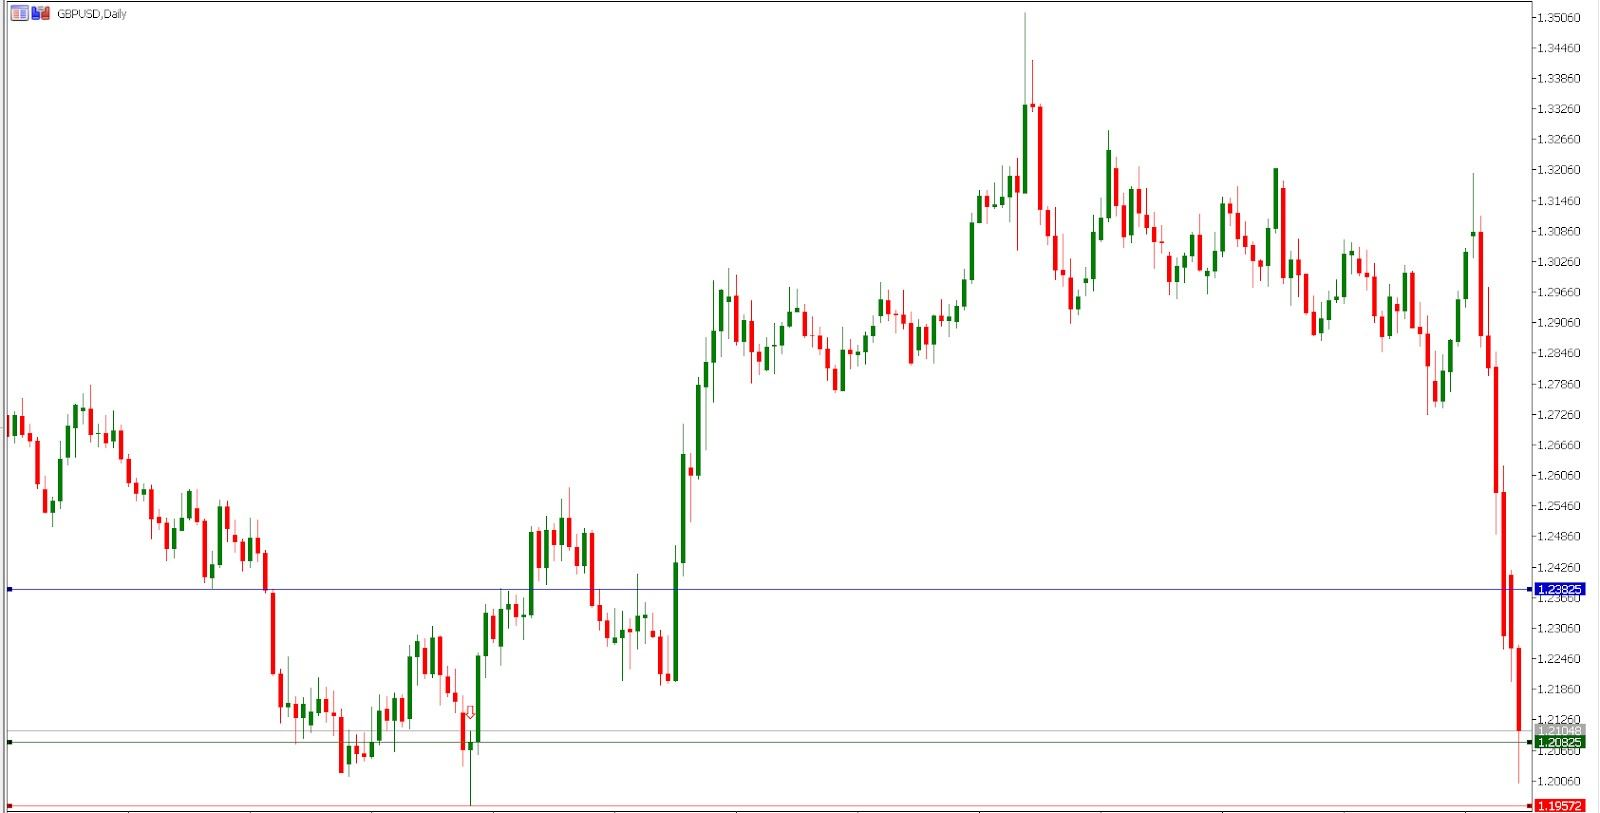 hammer on a GBP/USD daily chart